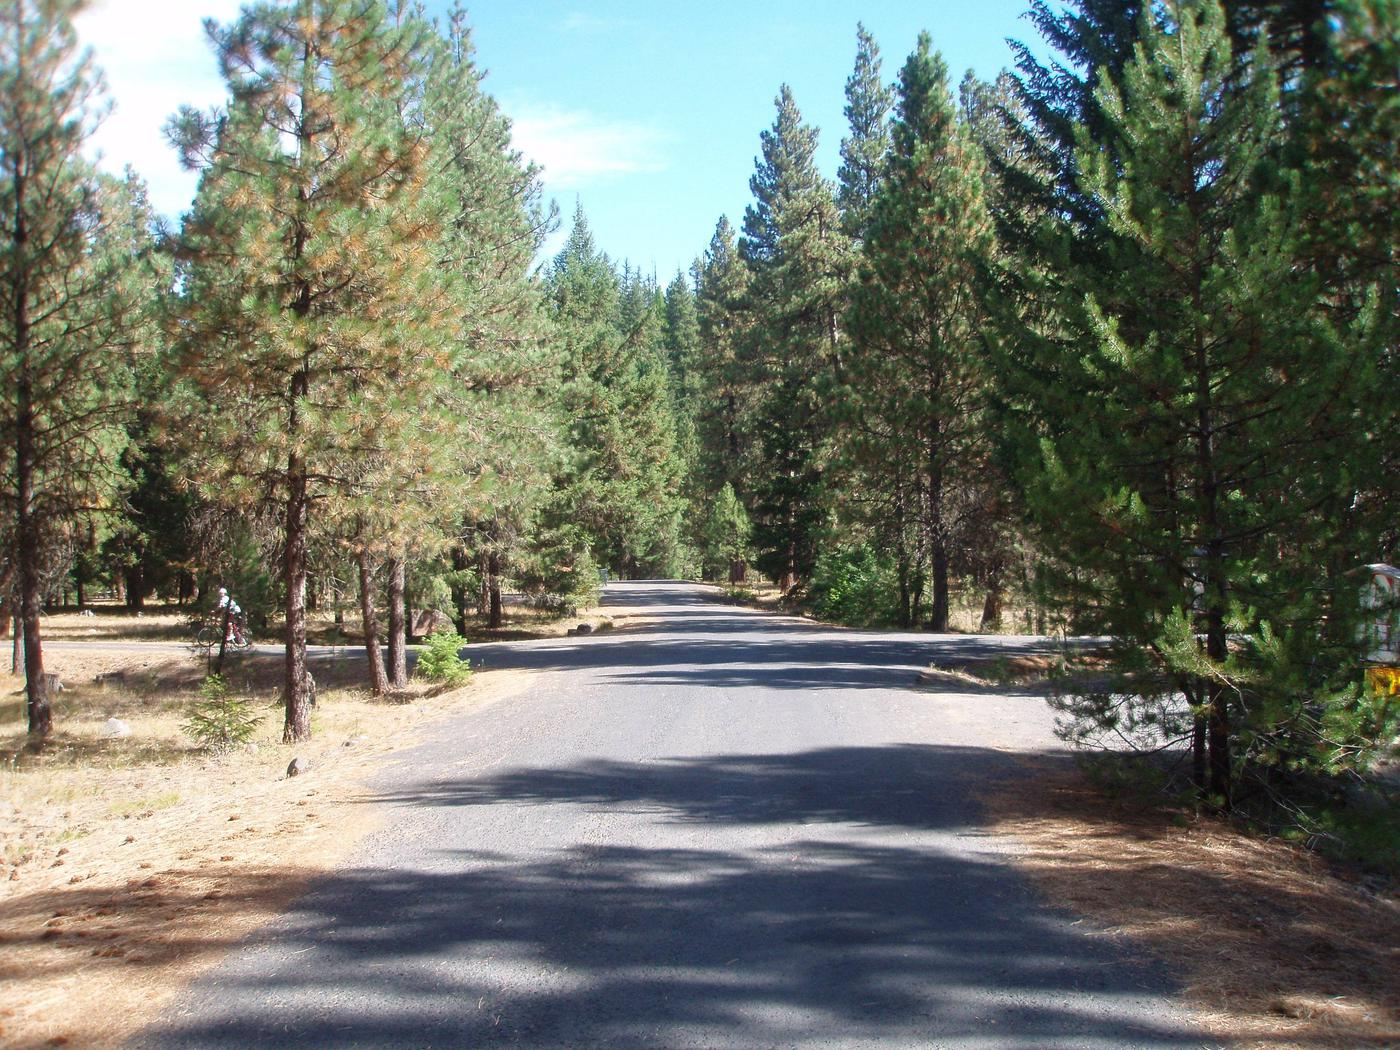 Flat paved road lined with pine and fir trees under partly cloudy sky.Kaner Flat Campground